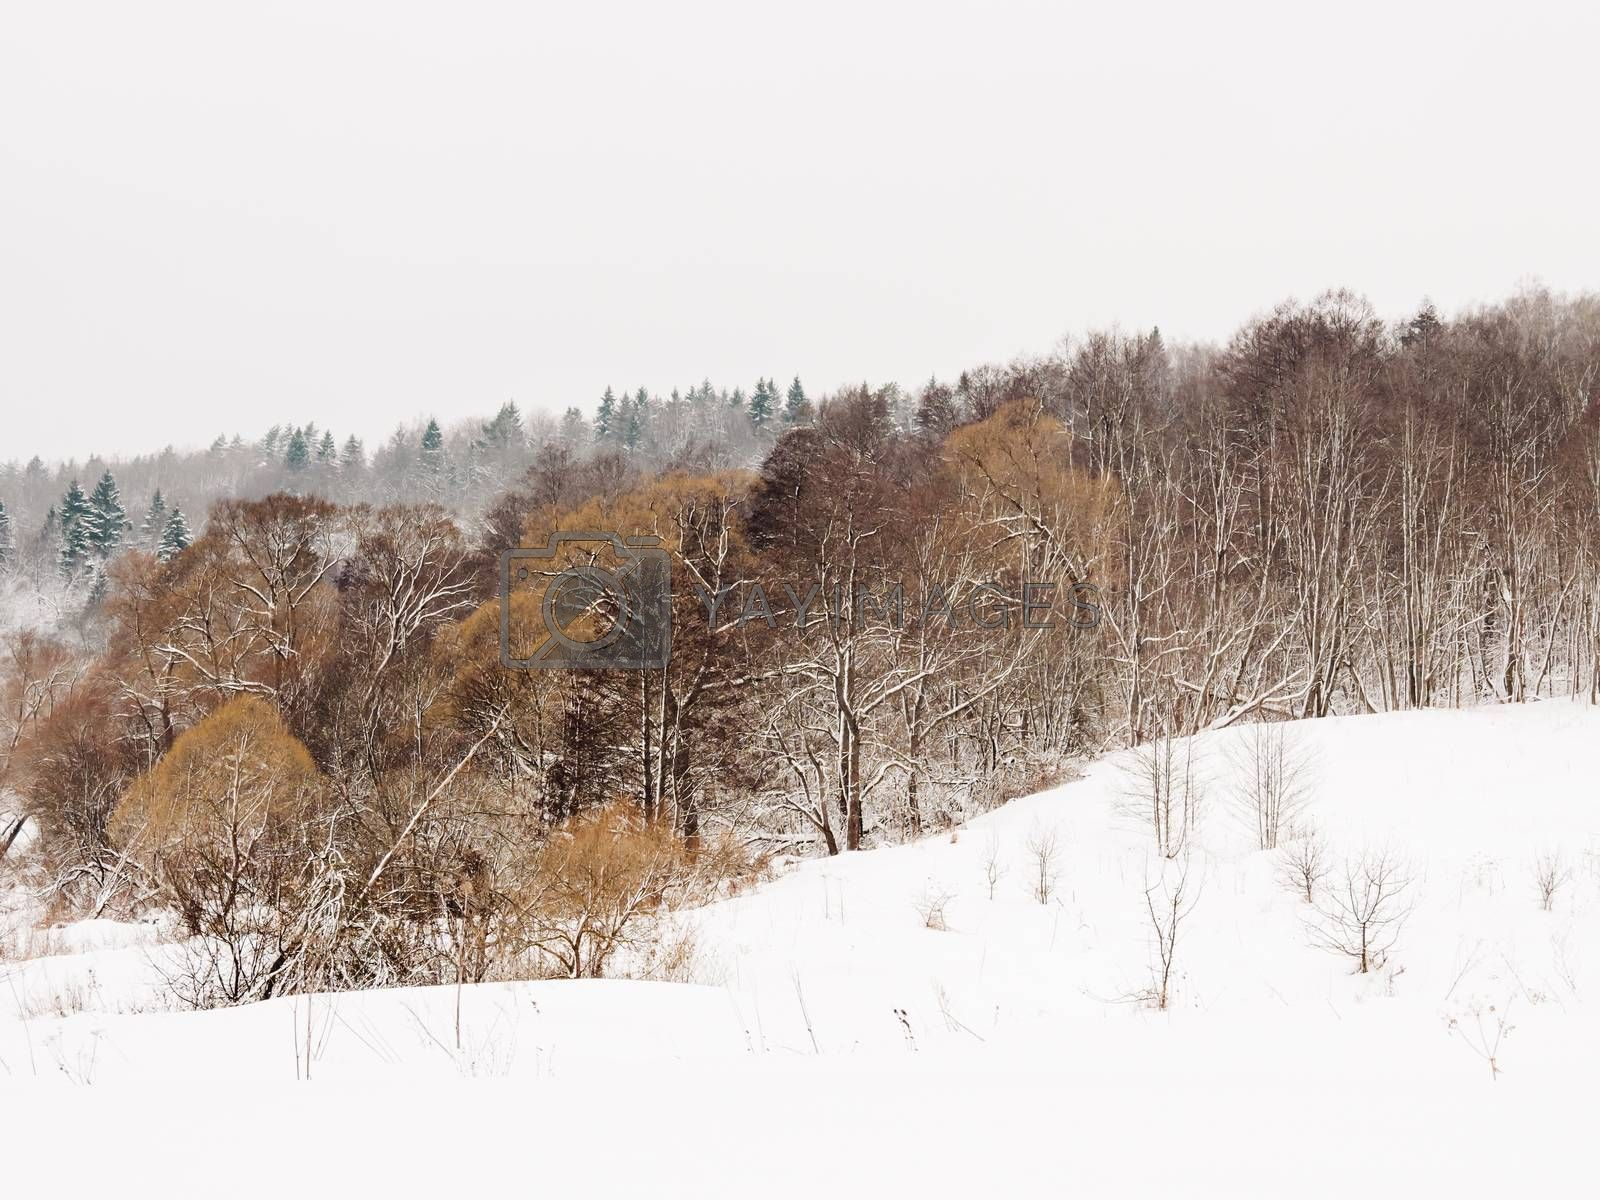 Winter natural background with trees under the snow. Rural landscape. Countryside.